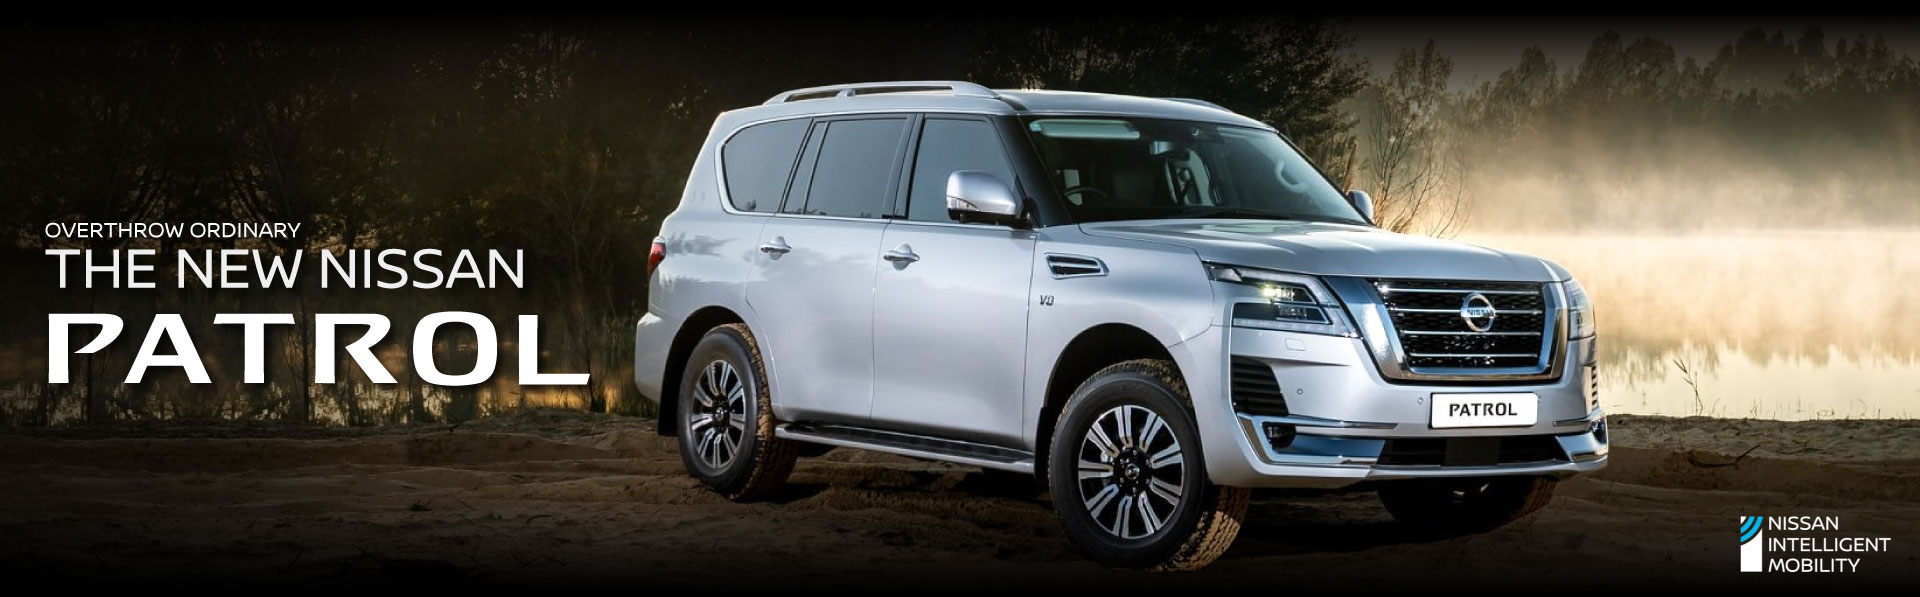 all-new-nissan-patrol-just-arrived